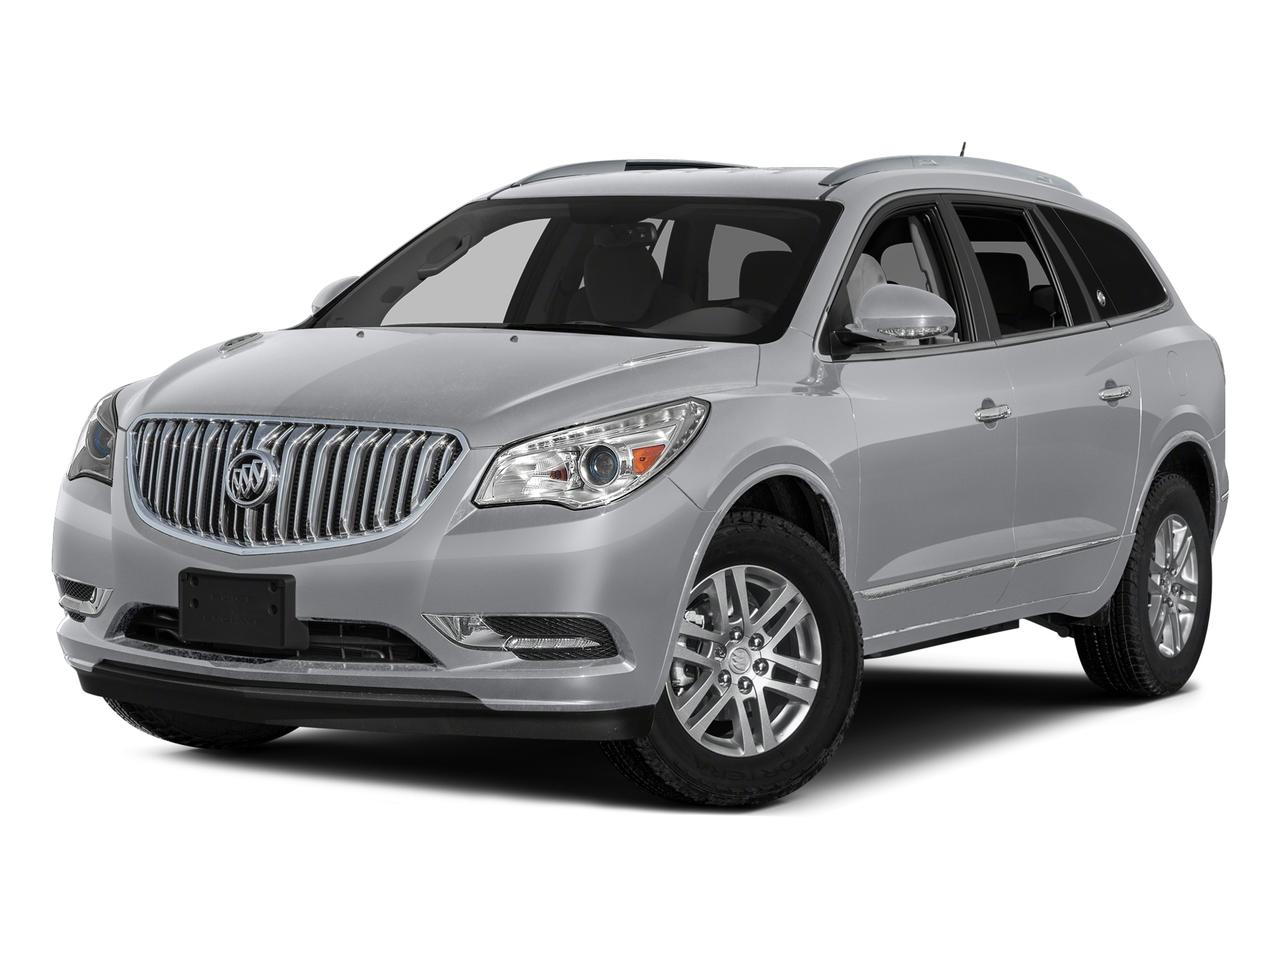 2017 Buick Enclave Vehicle Photo in Rockville, MD 20852